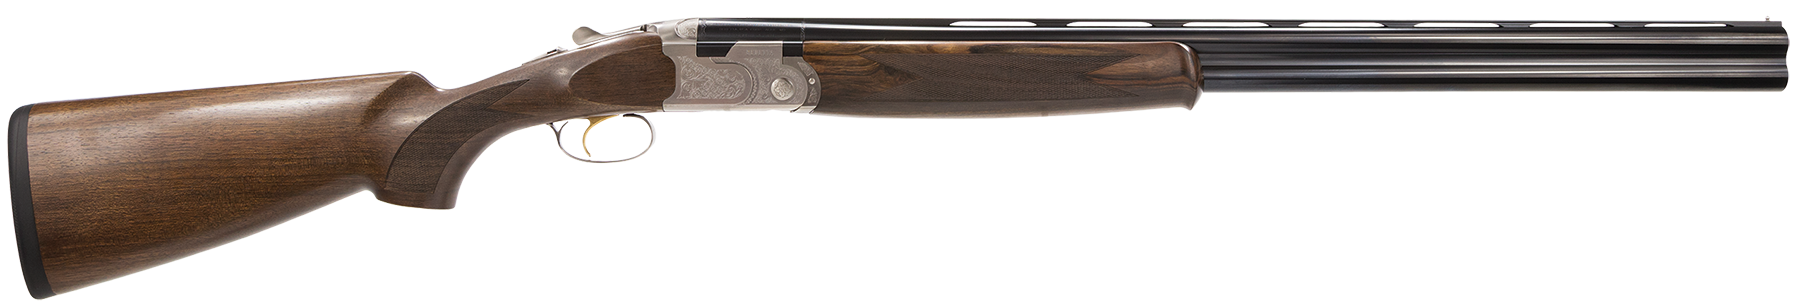 Beretta 686 Silver Pigeon I Over/Under Shotgun 3'' 12 Gauge 30'' Silver Engraved - Walnut